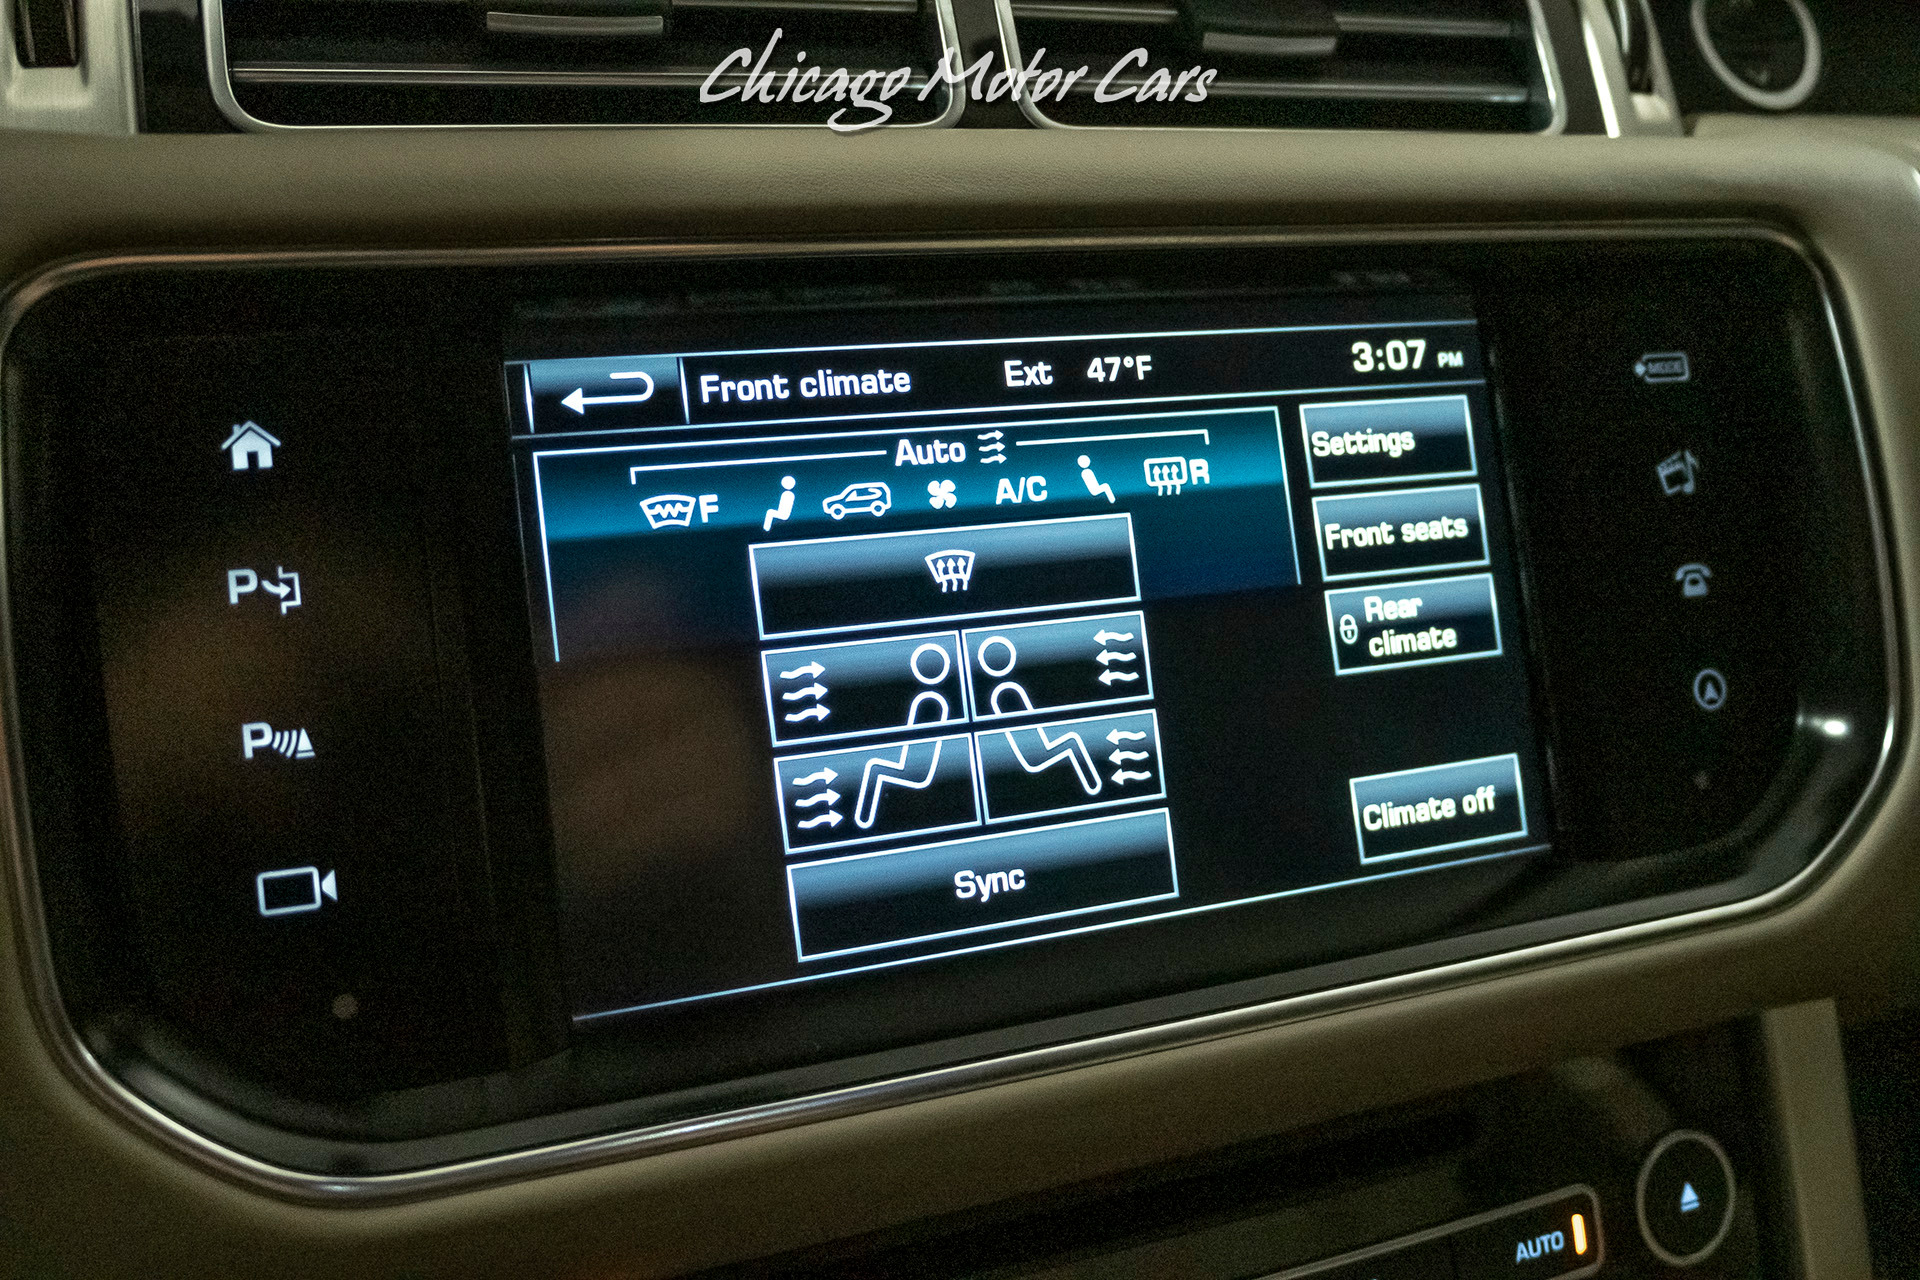 Used-2016-Land-Rover-Range-Rover-Supercharged-AWD-SUV-MSRP-123K-LOADED-WITH-FACTORY-OPTIONS